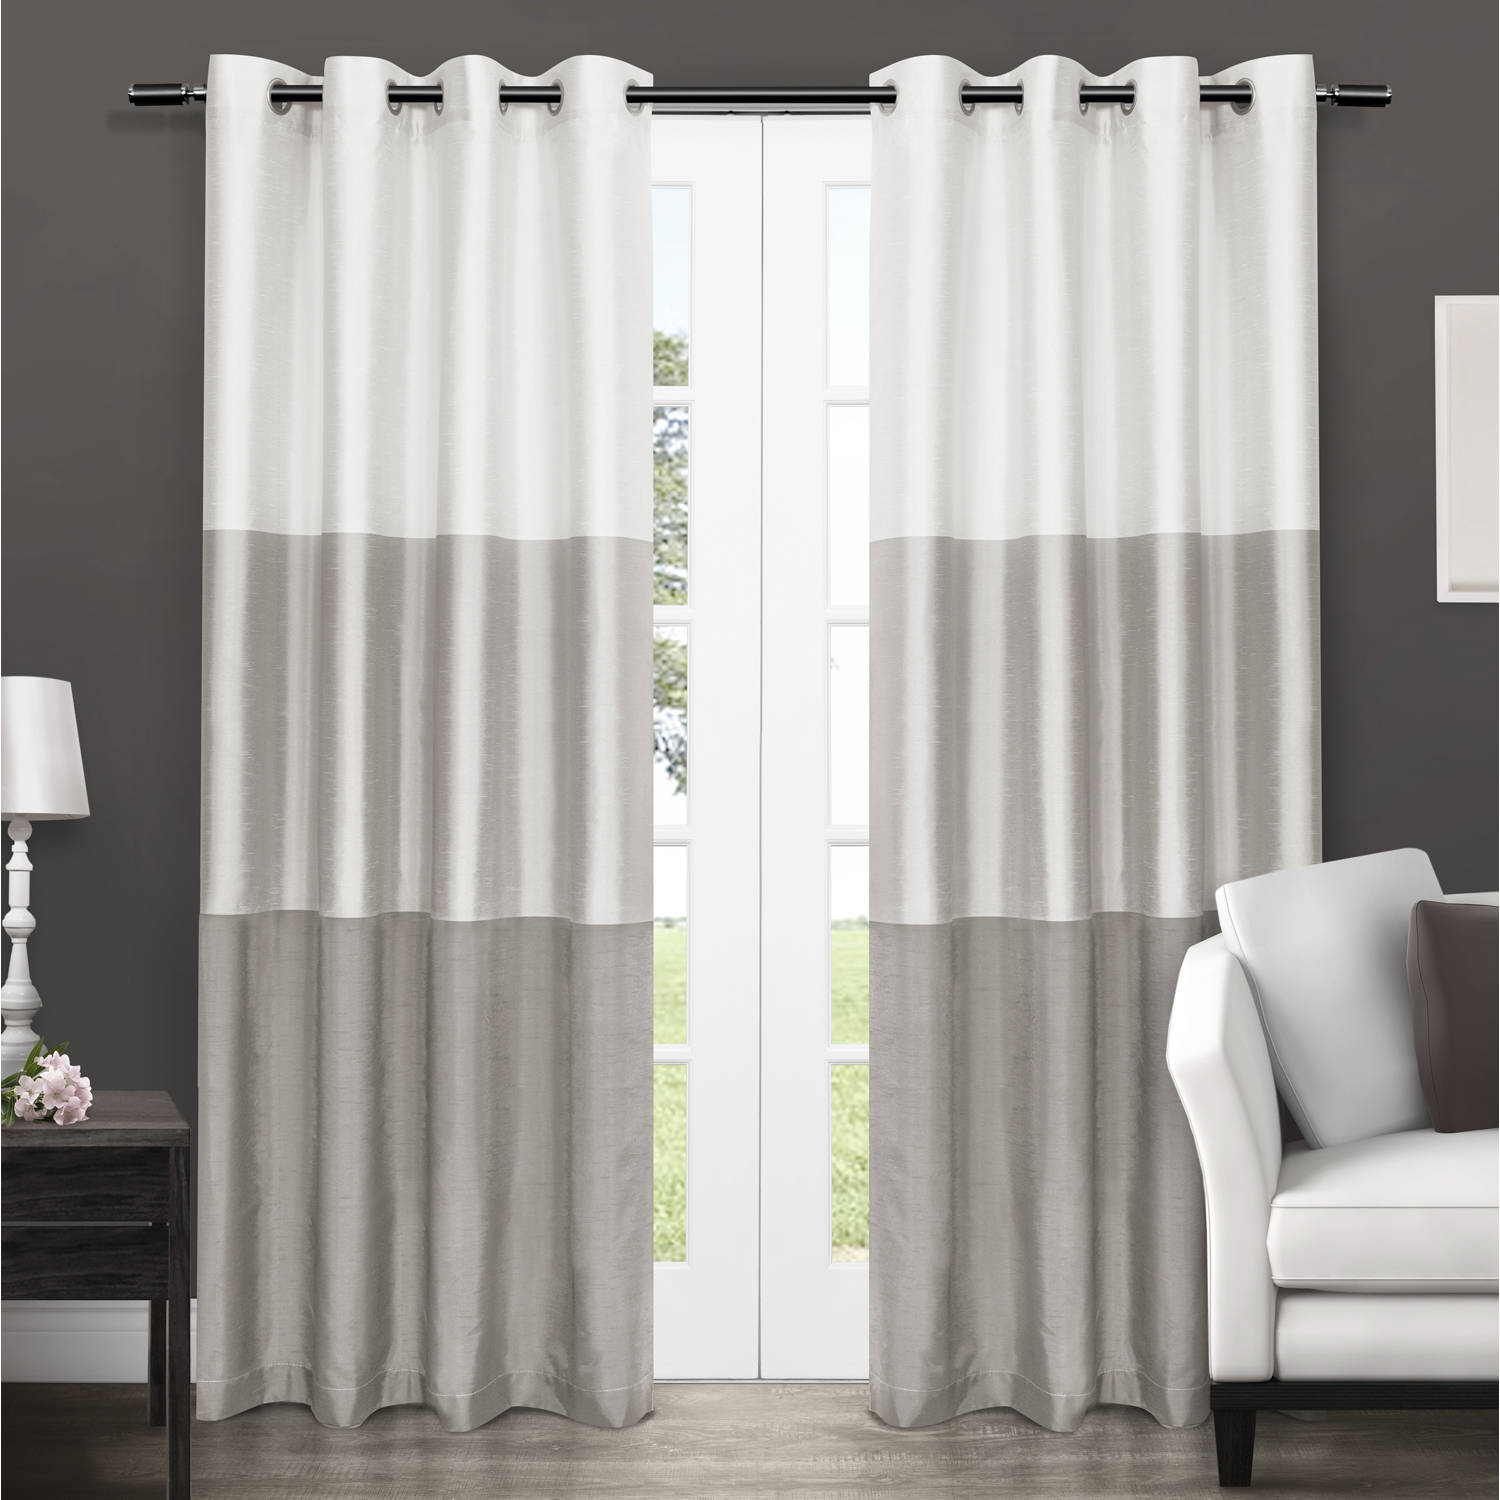 Best Sheer Fabric For Curtains Premiere Thermal Backed Energy Efficient Curtain Panels